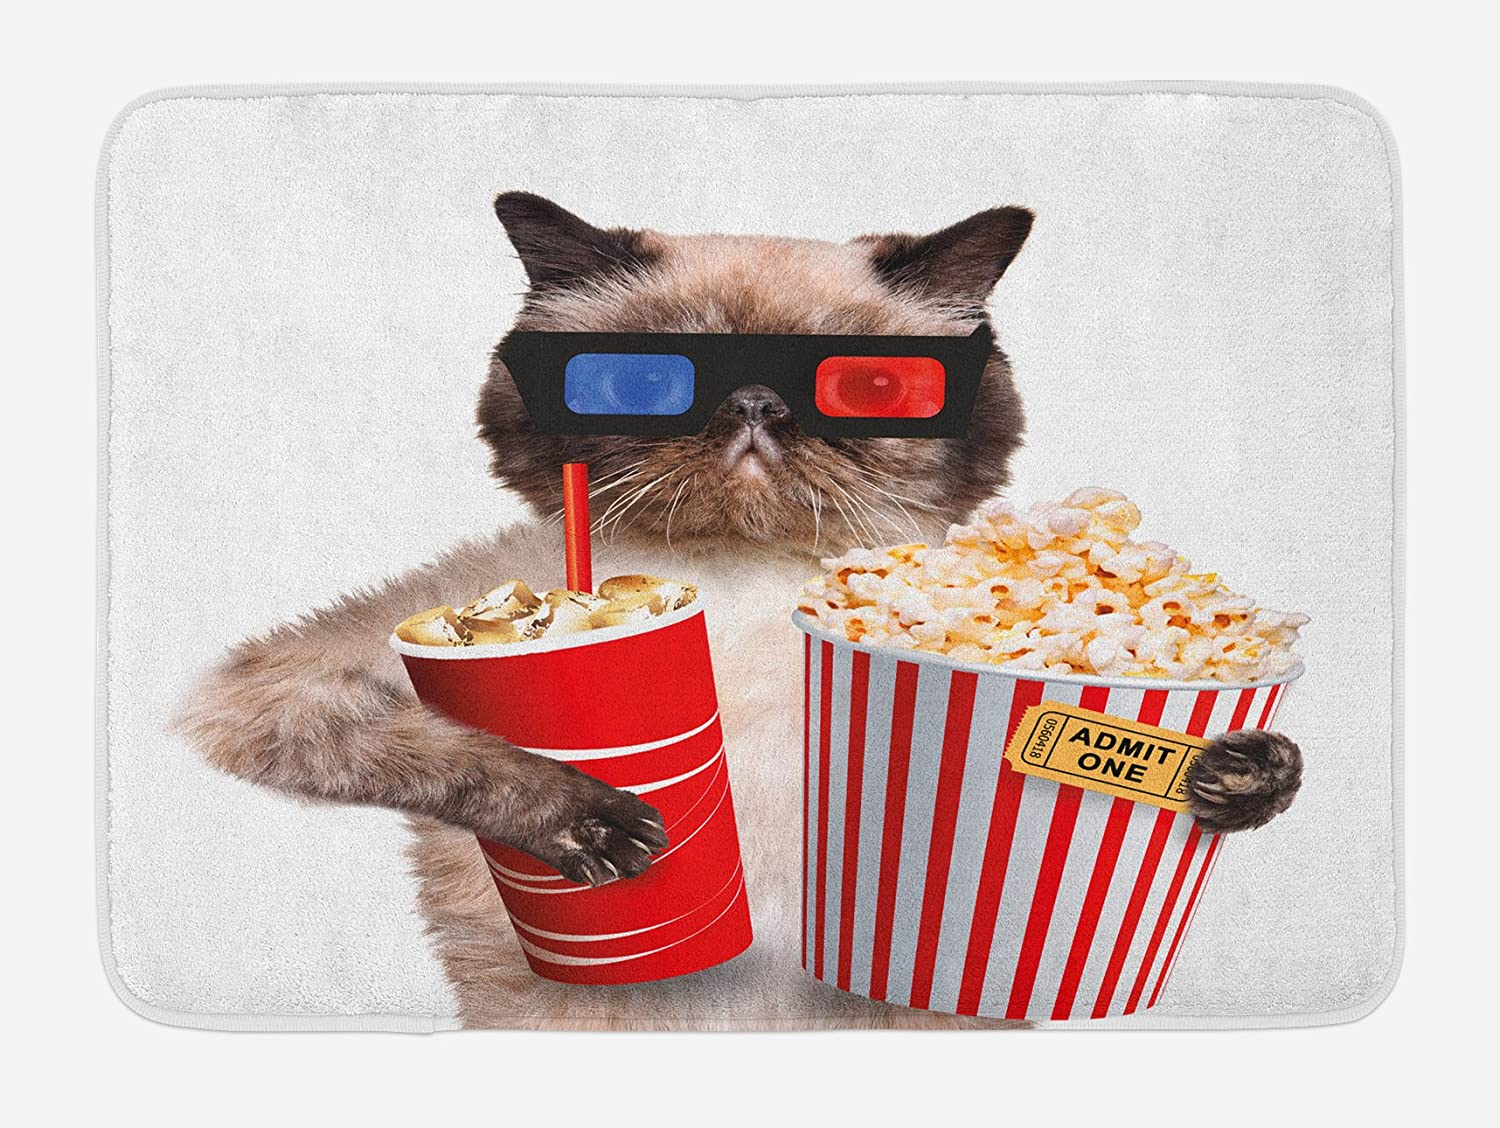 Ambesonne Movie Theater Bath Mat, Cat Popcorn and Drink Watching Film Glasses Entertainment Cinema Fun, Plush Bathroom Decor Mat with Non Slip Backing, 29.5